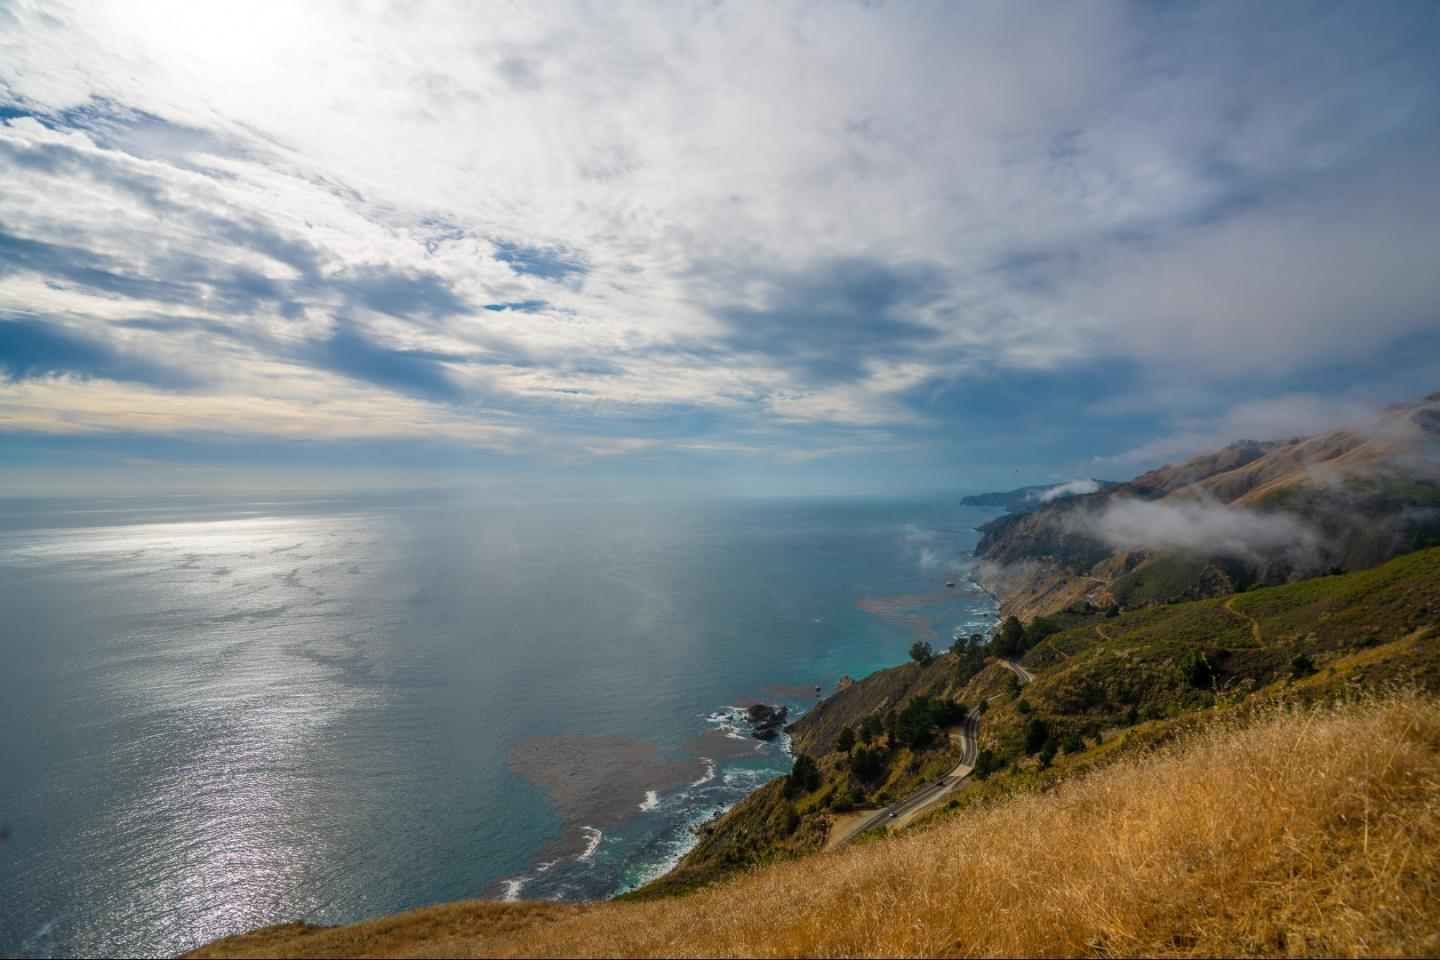 Property for sale at 0 Vacant Land, Big Sur,  CA 93920